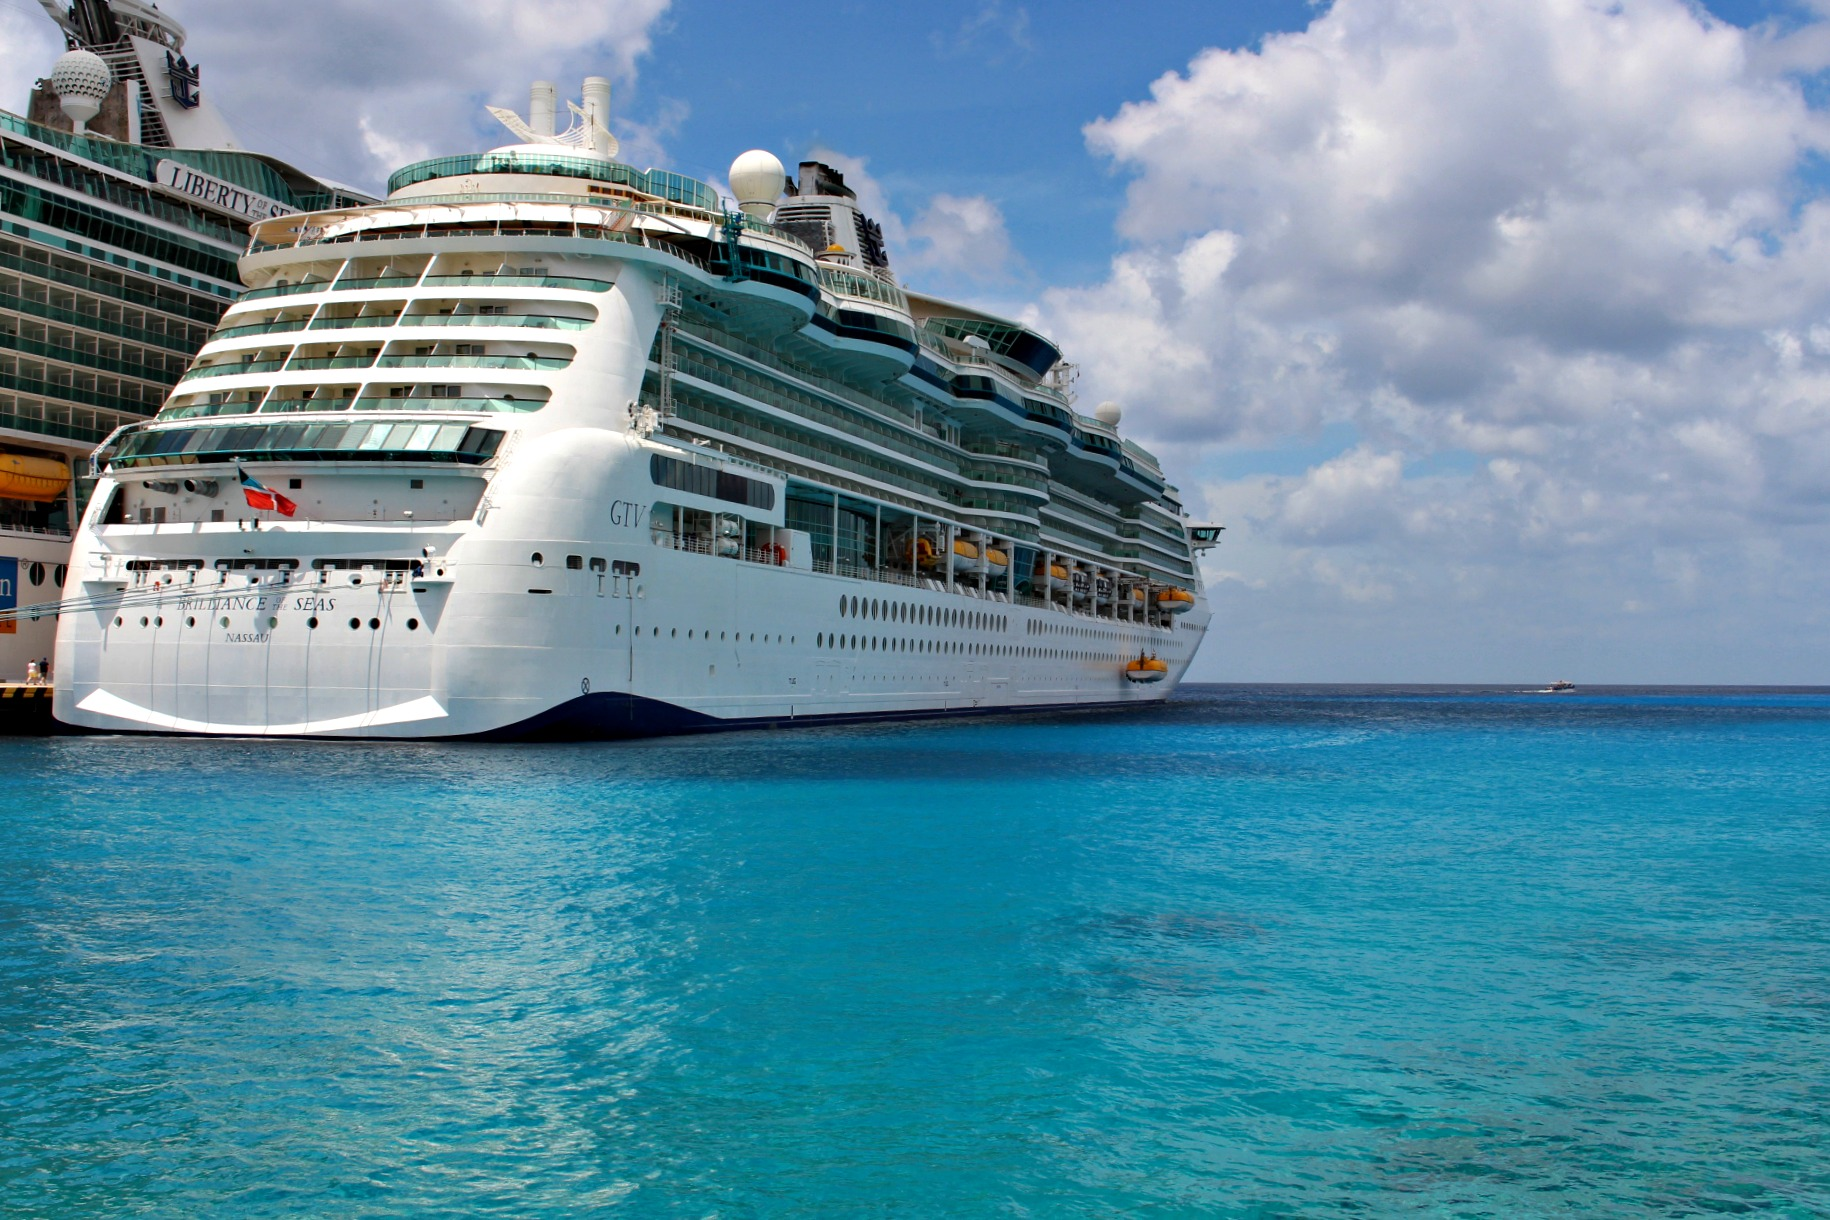 The Brilliance of the Seas by Royal Carribbean